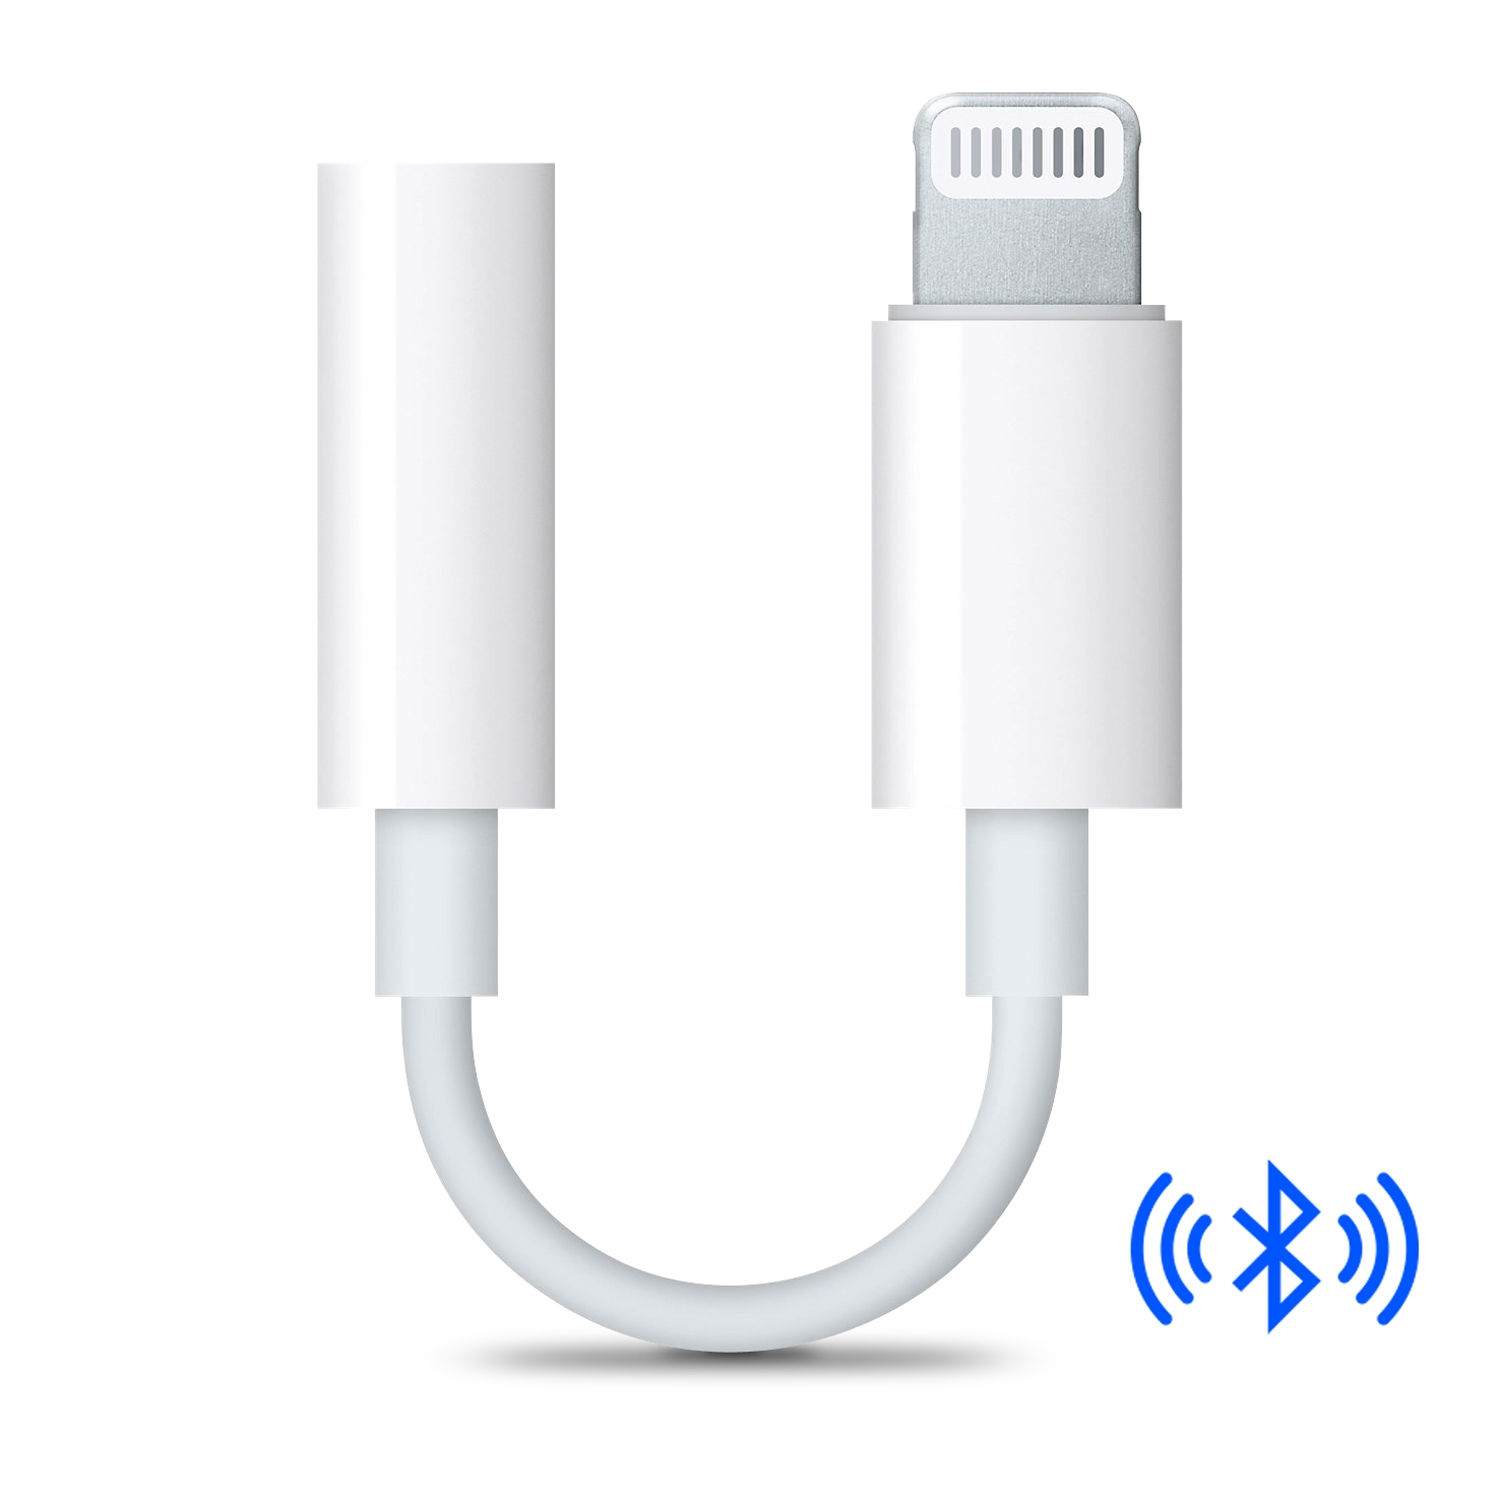 Bluetooth Headphone Jack Adapter To 3 5mm Audio Jack Earphone Extension Cord For Iphone X Iphone 8 8 Plus Iphone 7 7 Plus Make Sure Pair With Your Iphone To Receive Calls Lincoln Cell Phone Cases